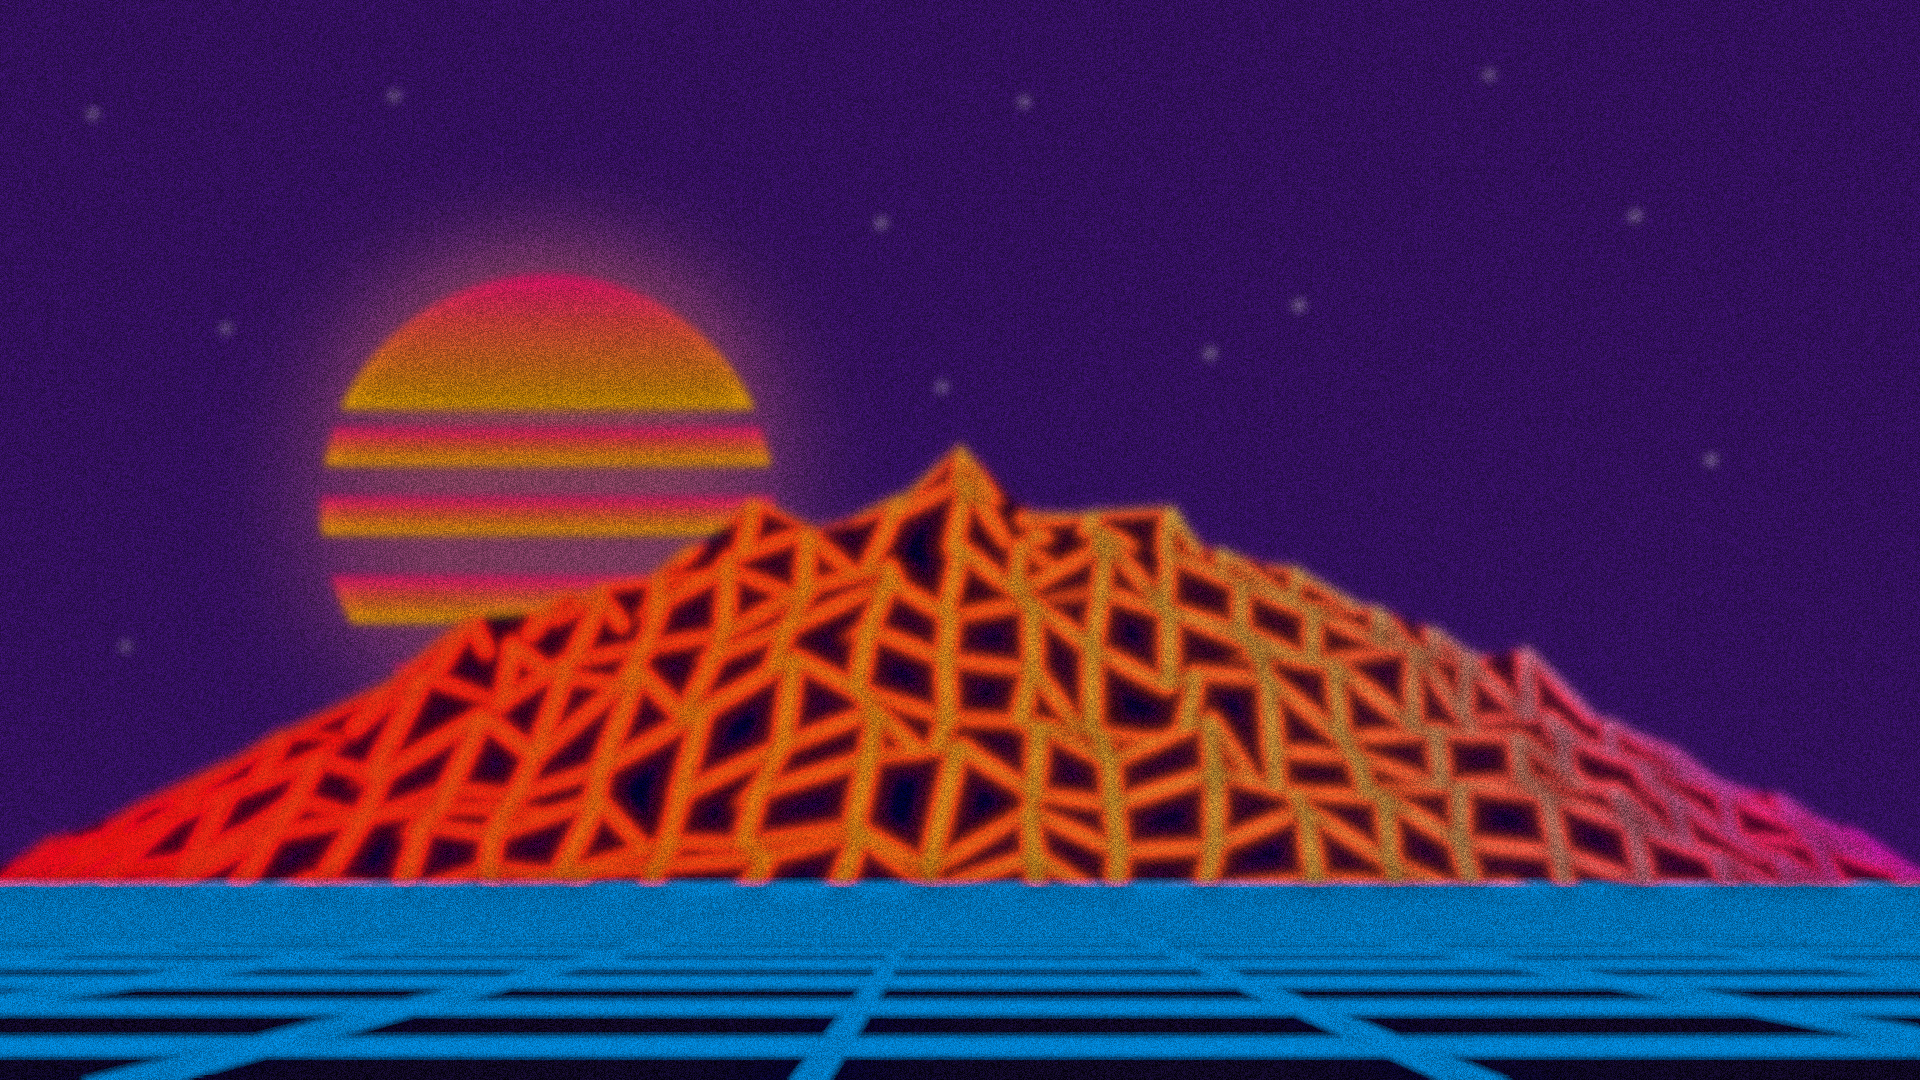 Retro Wallpaper HD 4k